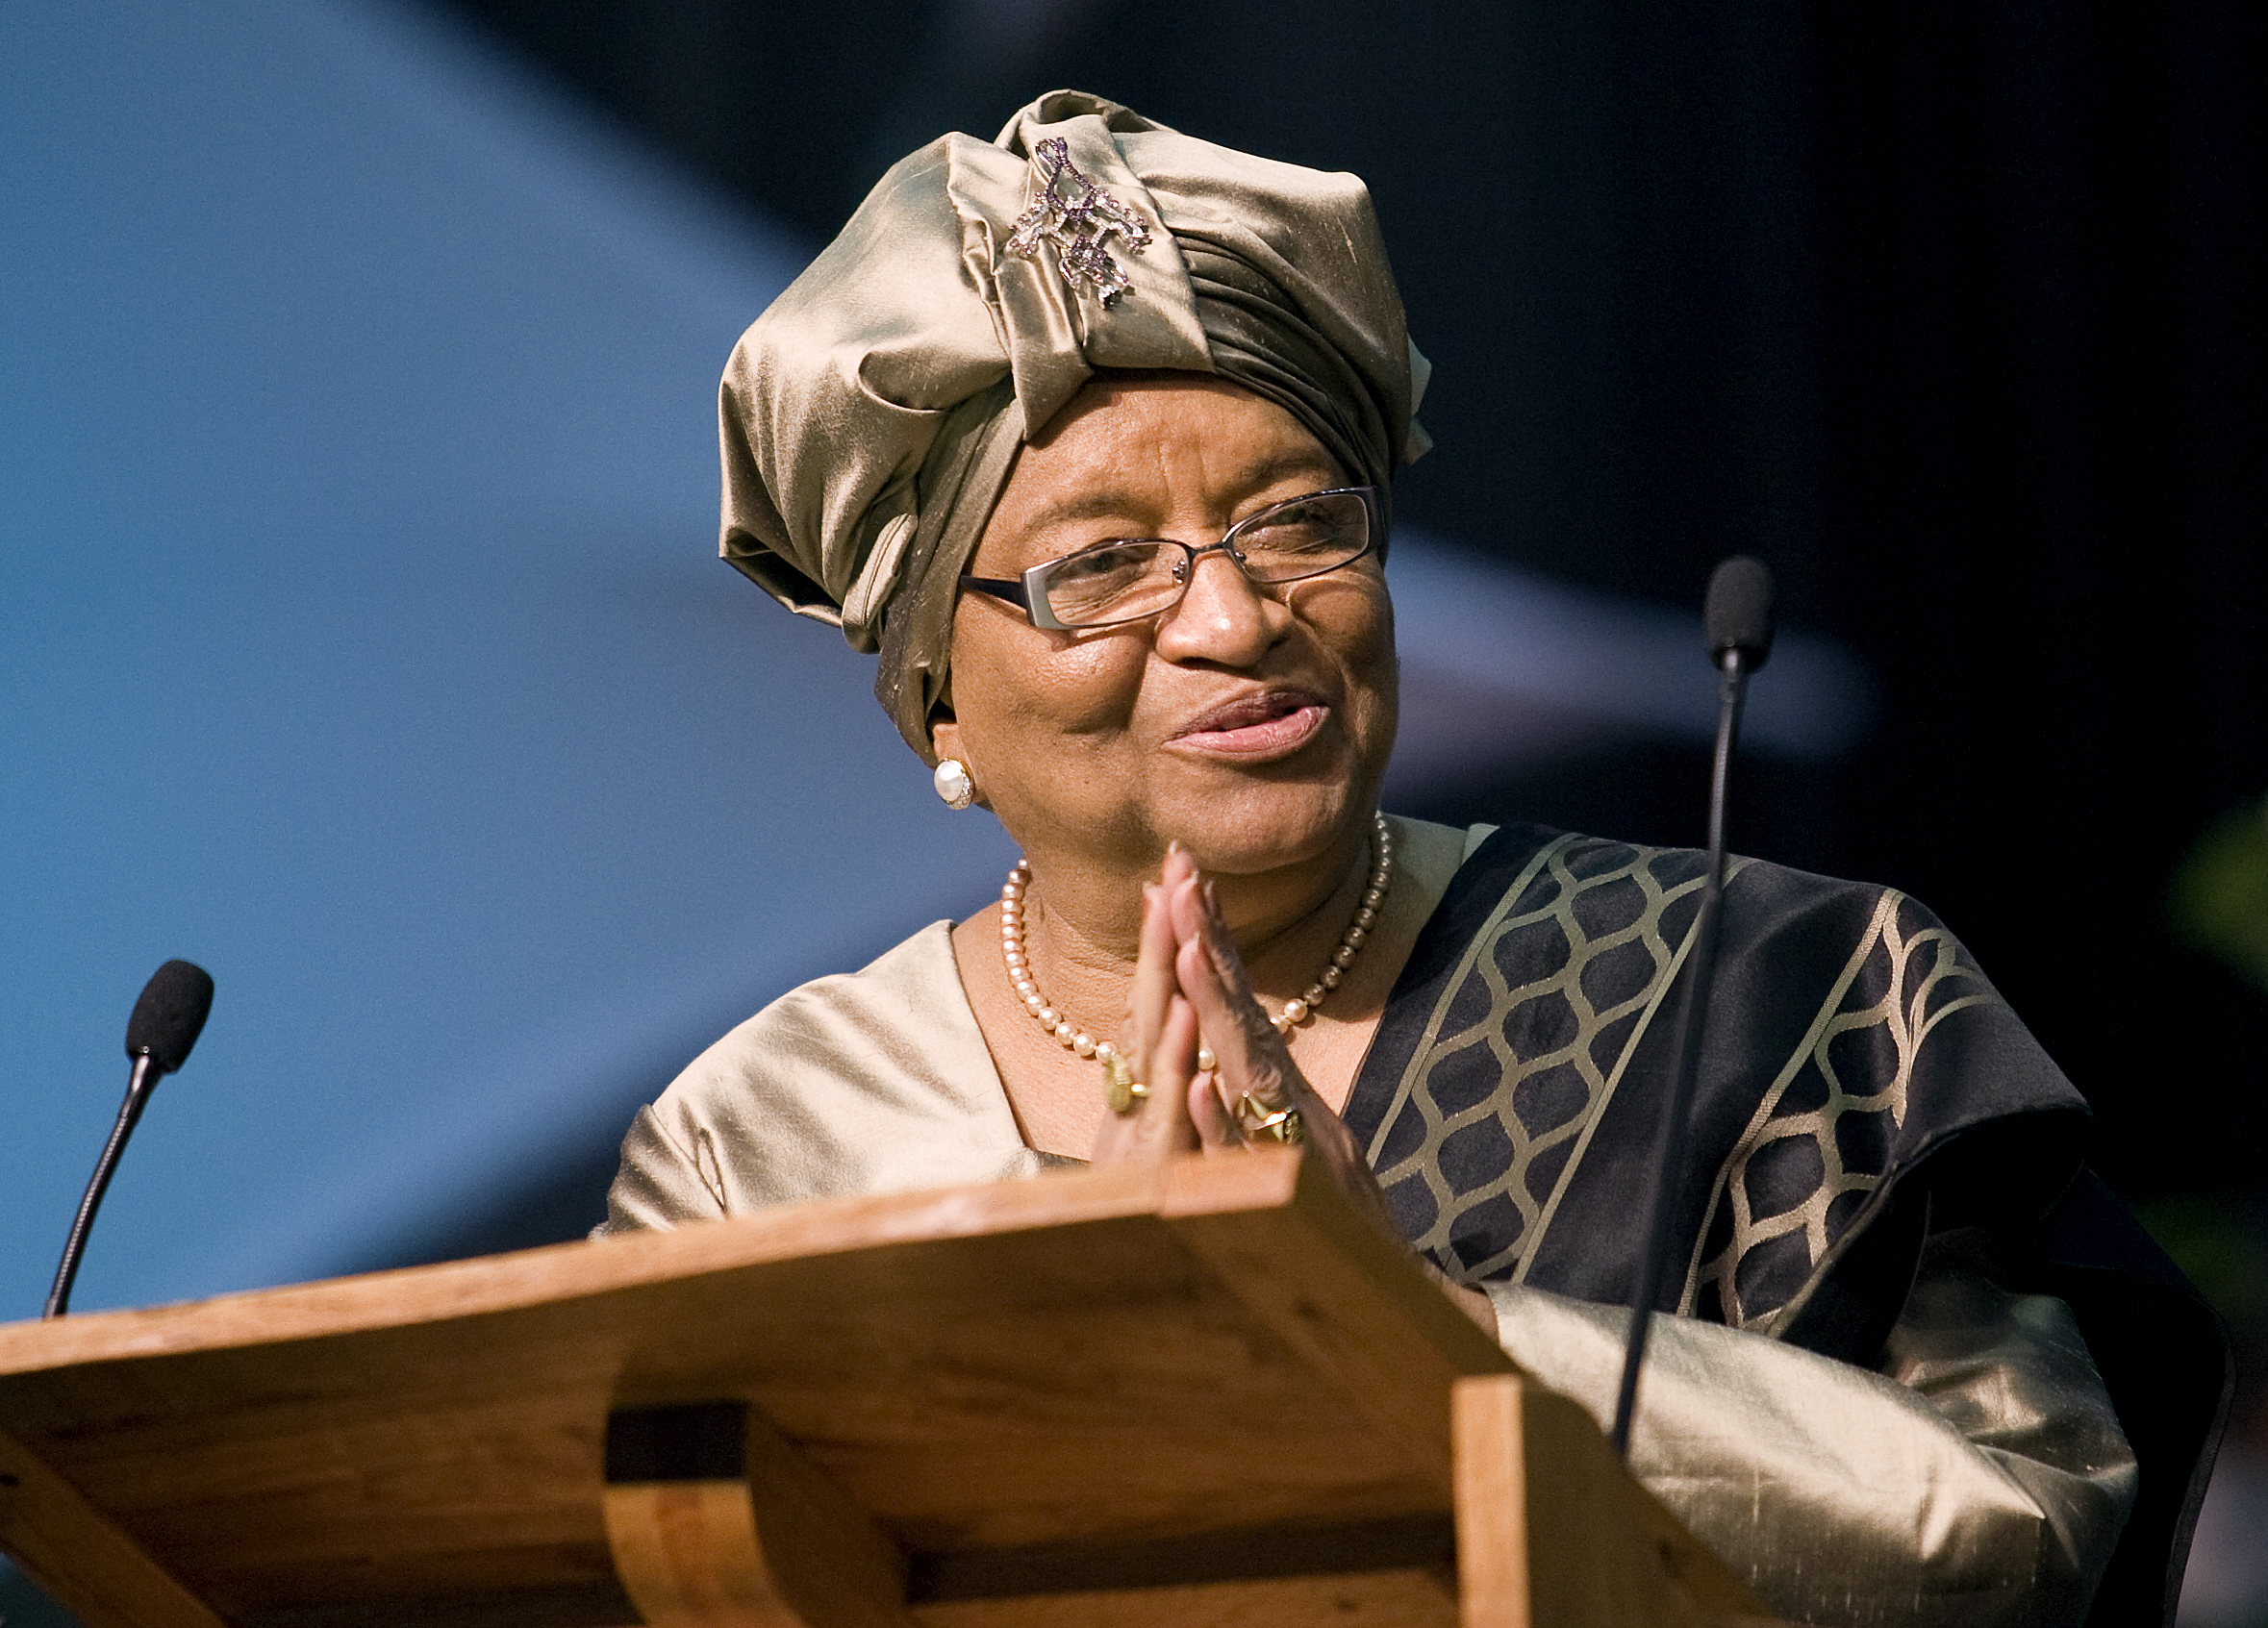 Ellen Johnson Sirleaf, president of Liberia, addresses the 2008 United Methodist General Conference on April 29 in Fort Worth, Texas. Sirleaf is a United Methodist and the first female head of state in Africa. A UMNS photo by Mike DuBose. Photo #GC0380. April 29, 2008.